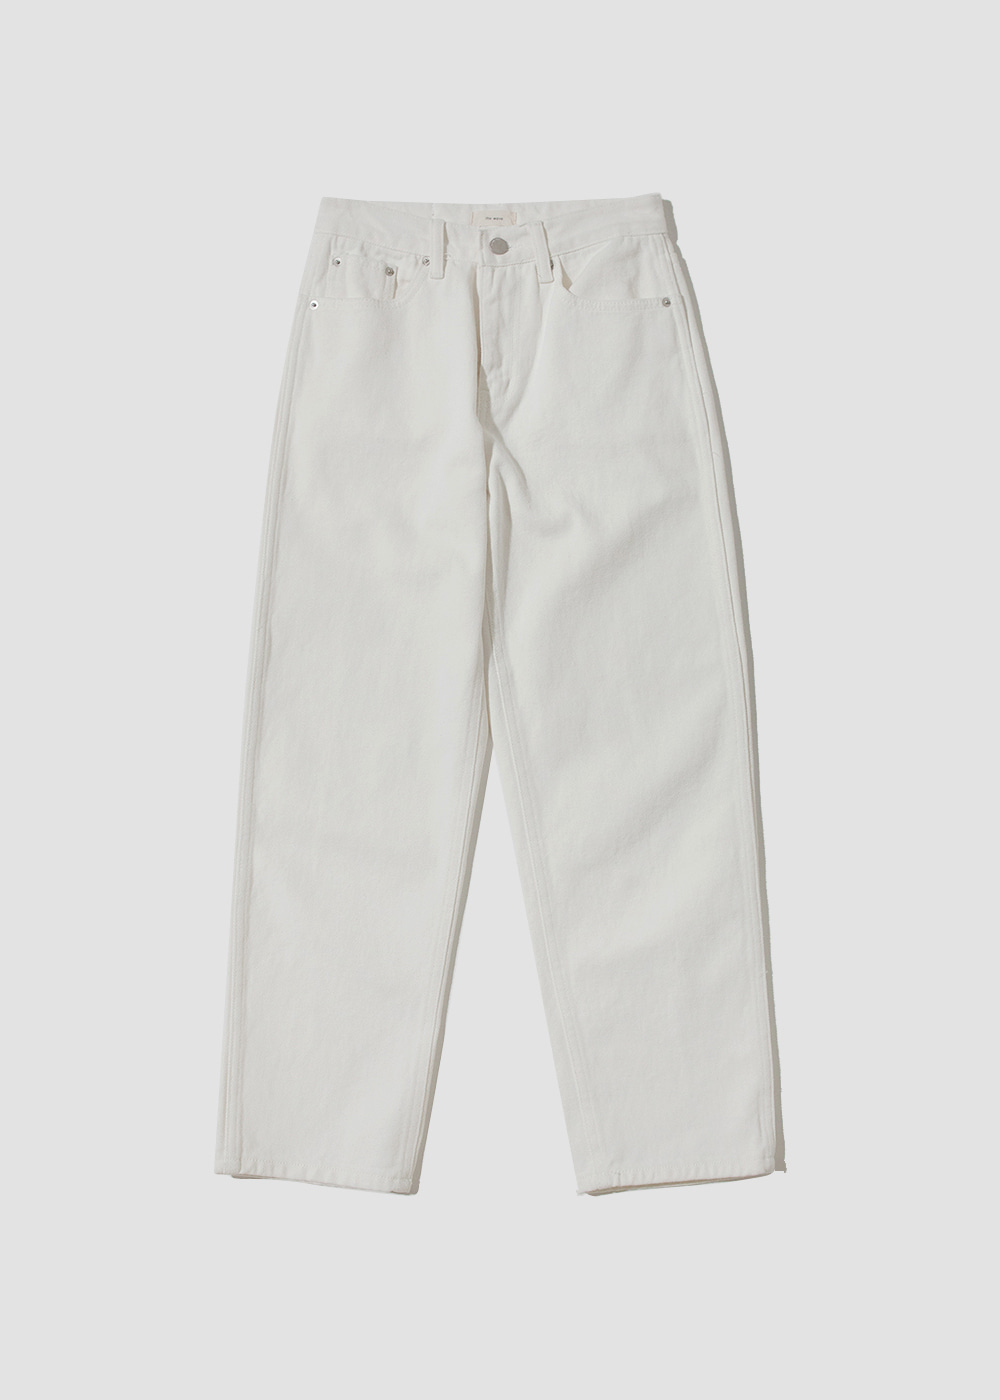 [THE WAVE] Wave White Pants